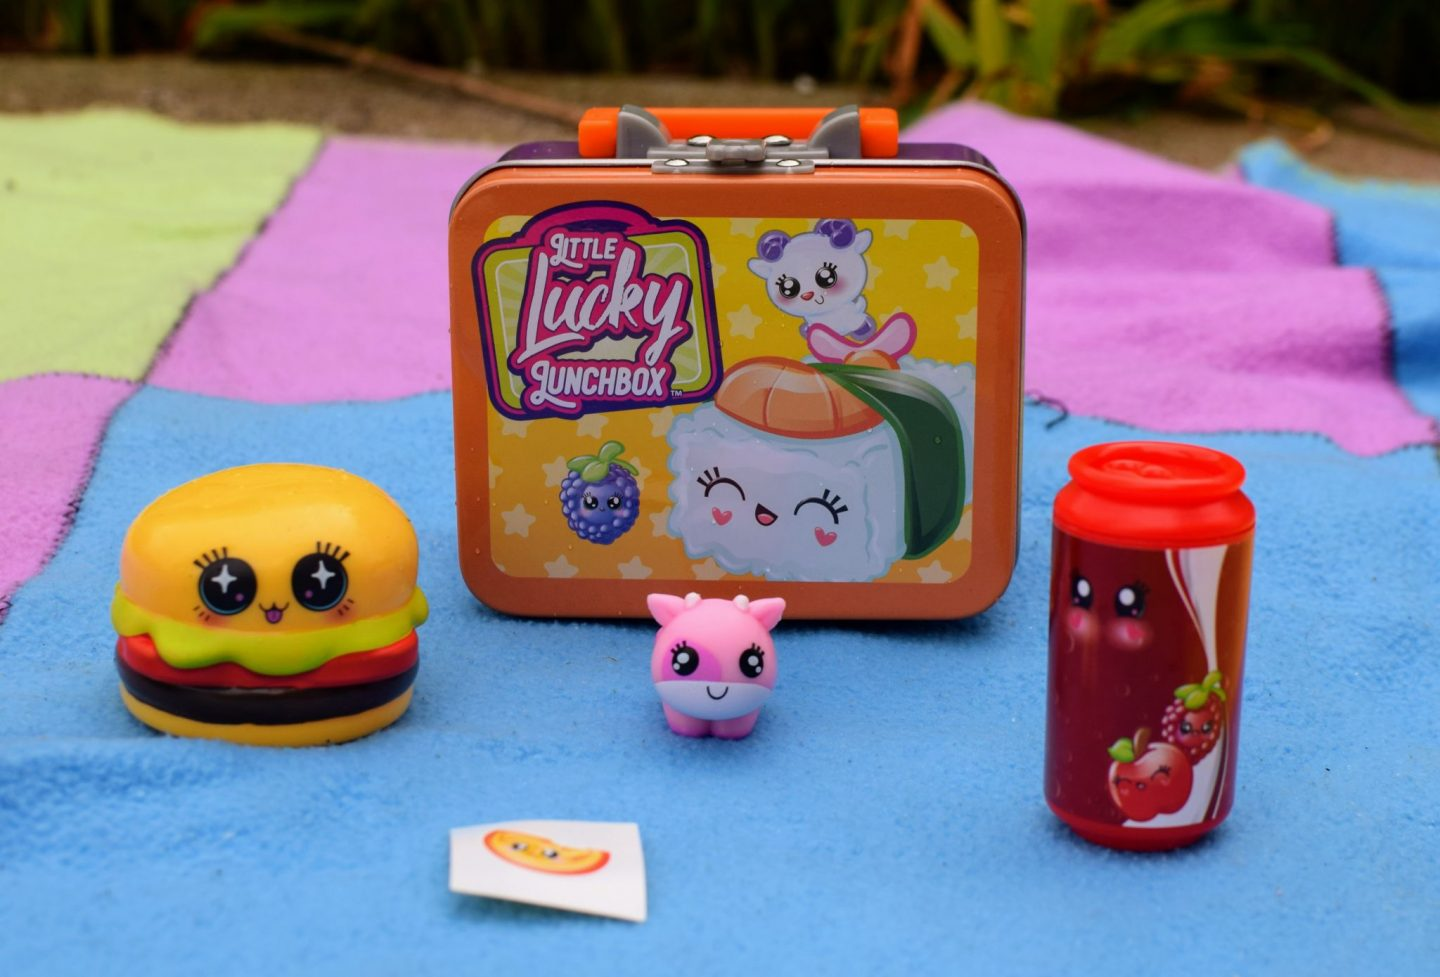 , Easter and Spring Giftguide: Cutetito, Little Lucky Lunchbox and My Little Pony Retro